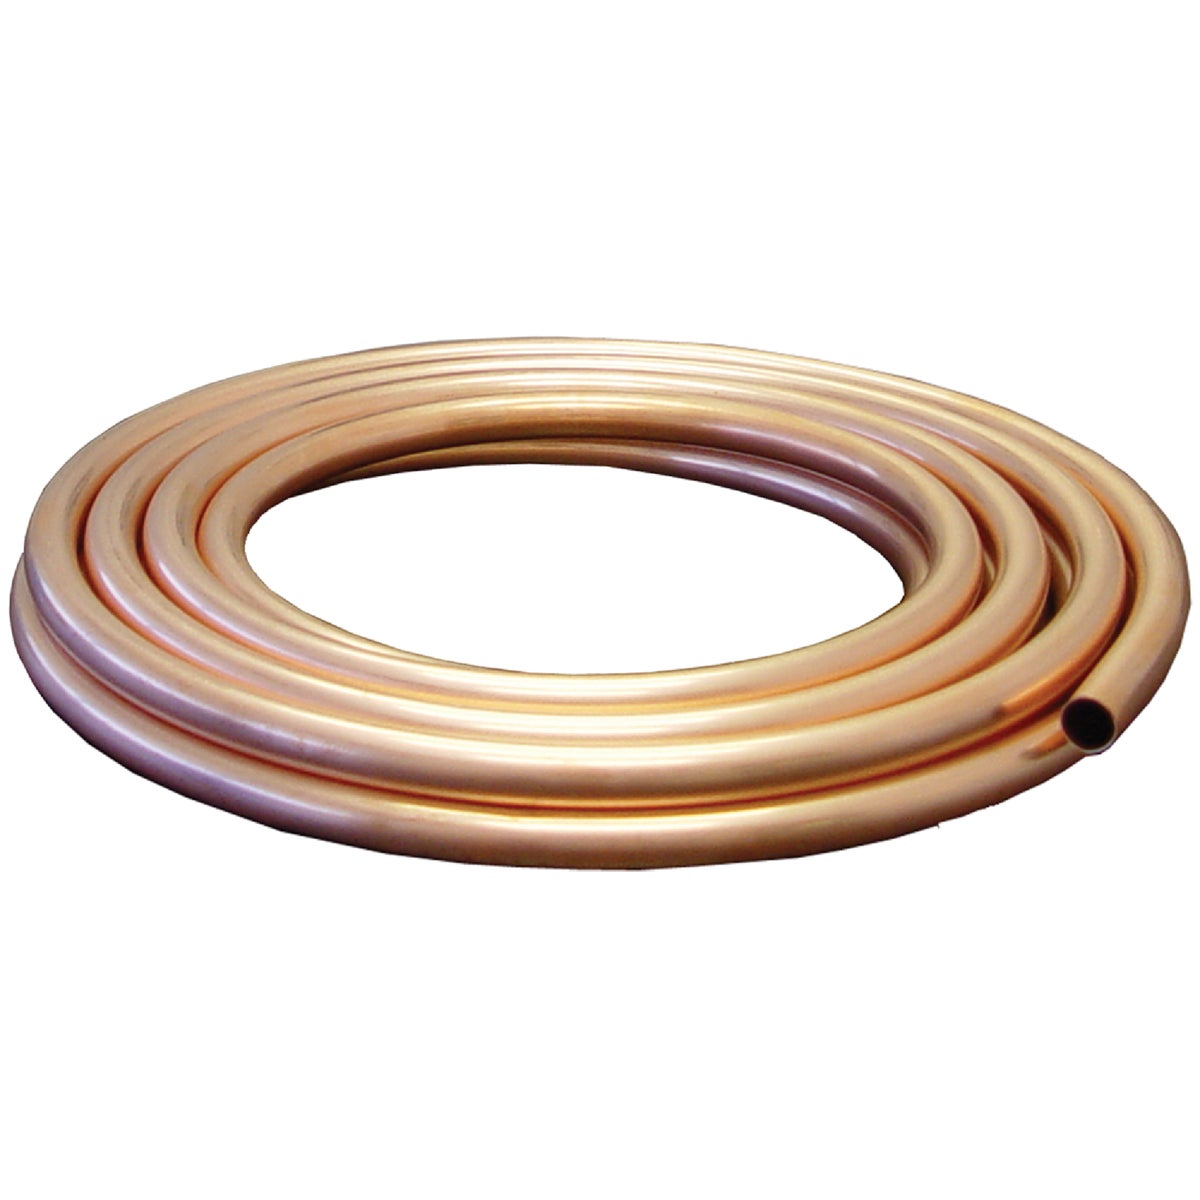 "1/2""ODX25'UG COPPER COIL - UT08025 by Mueller B K"